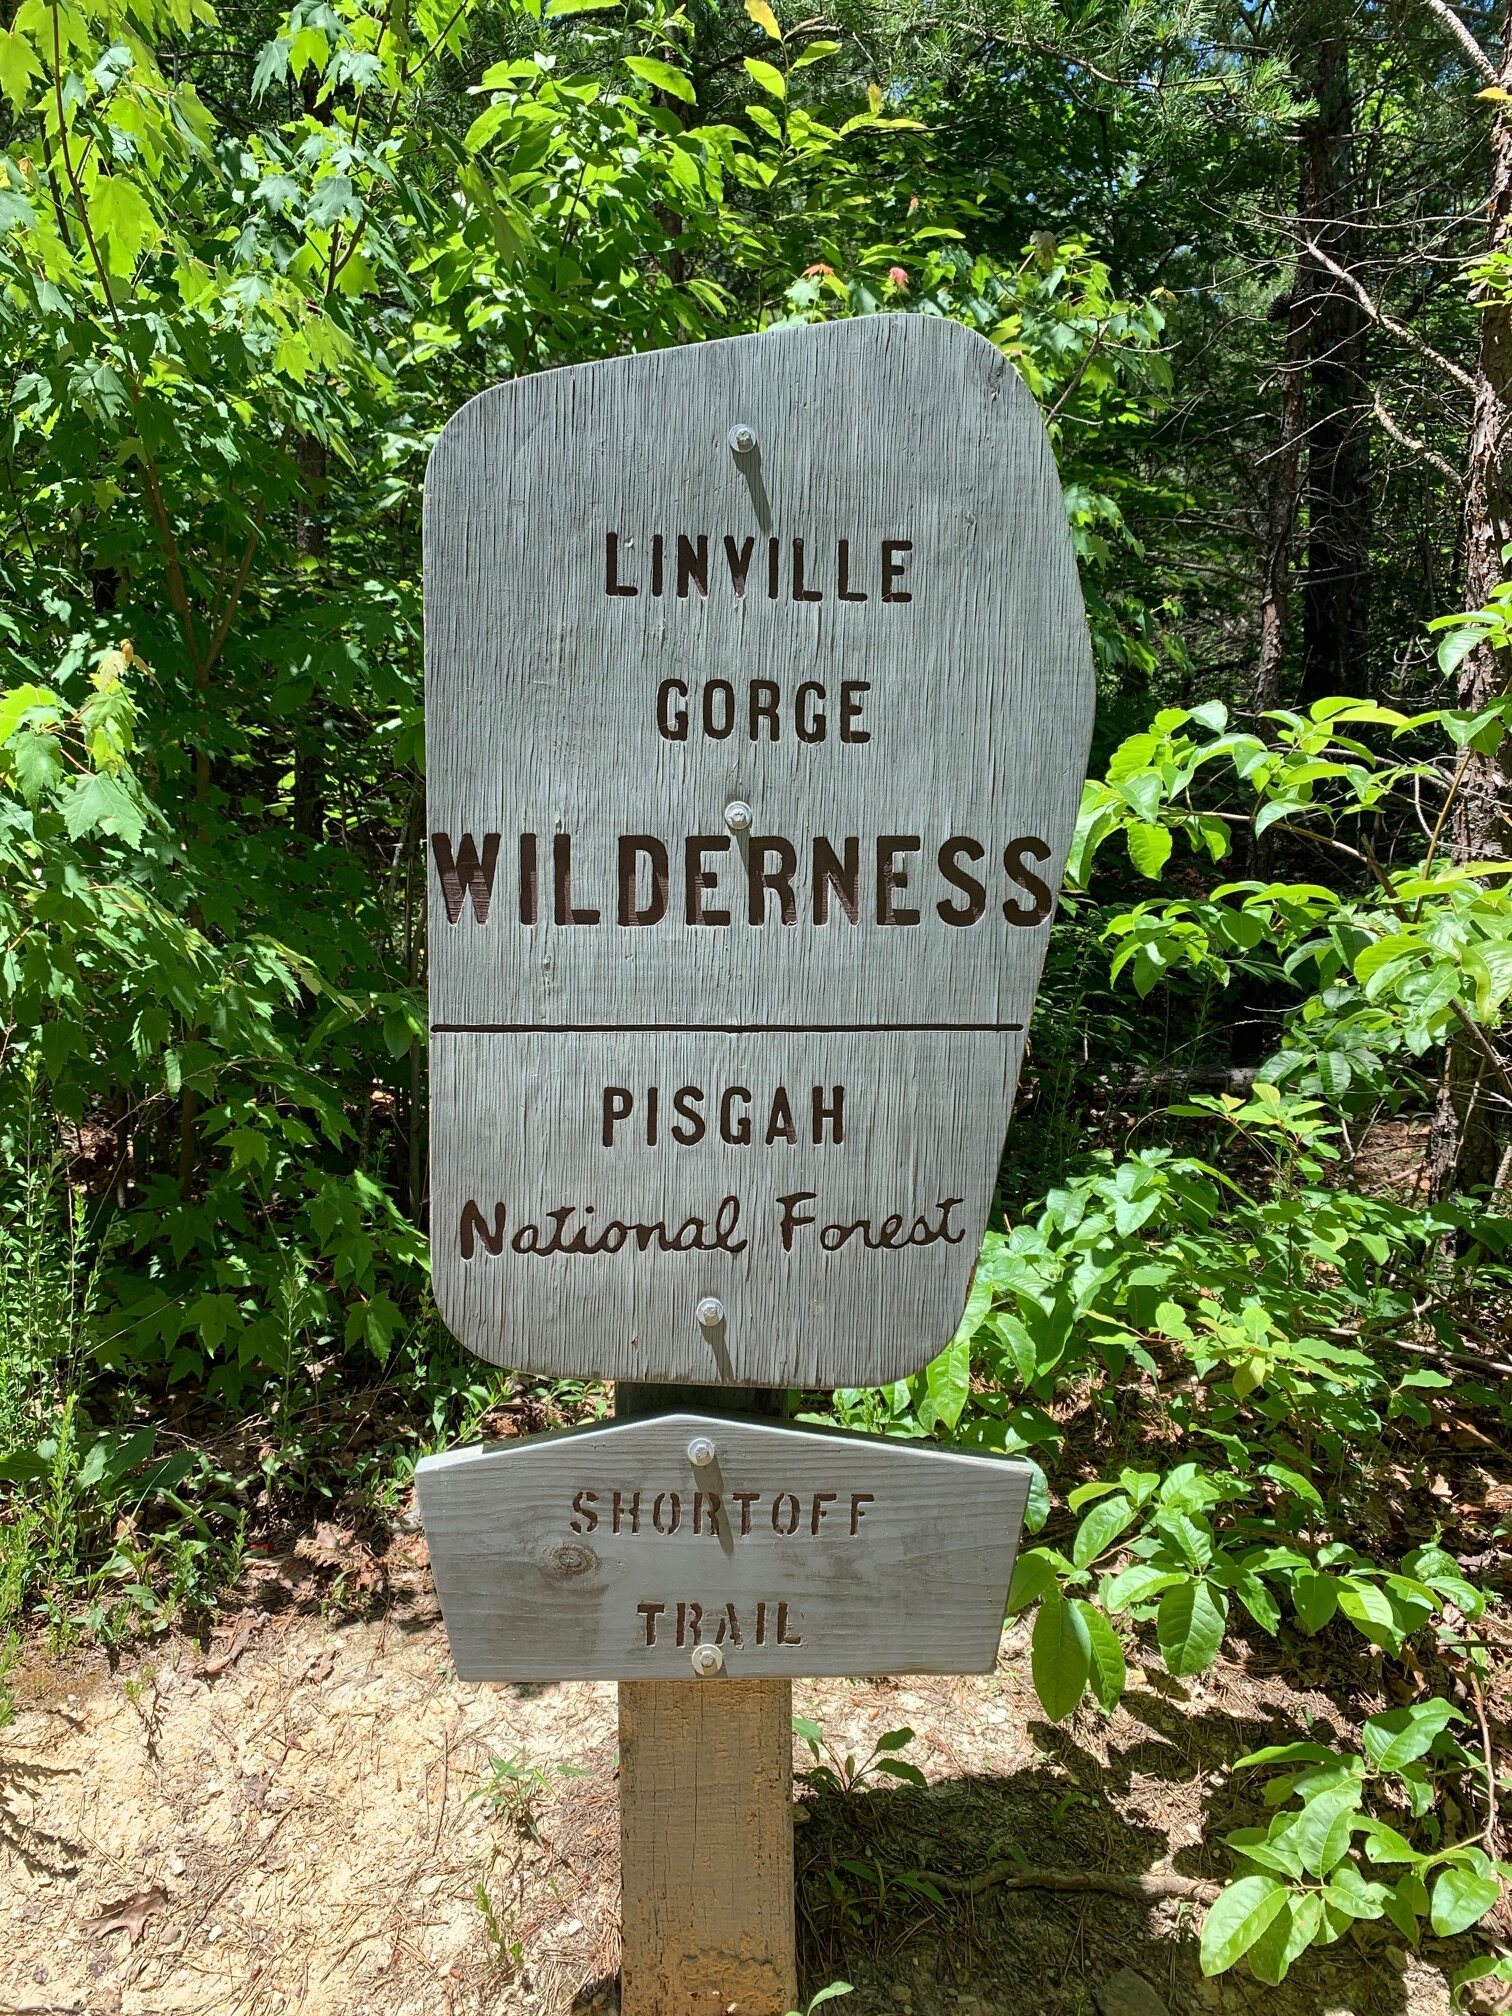 Sign for Linville Gorge Wilderness Trail